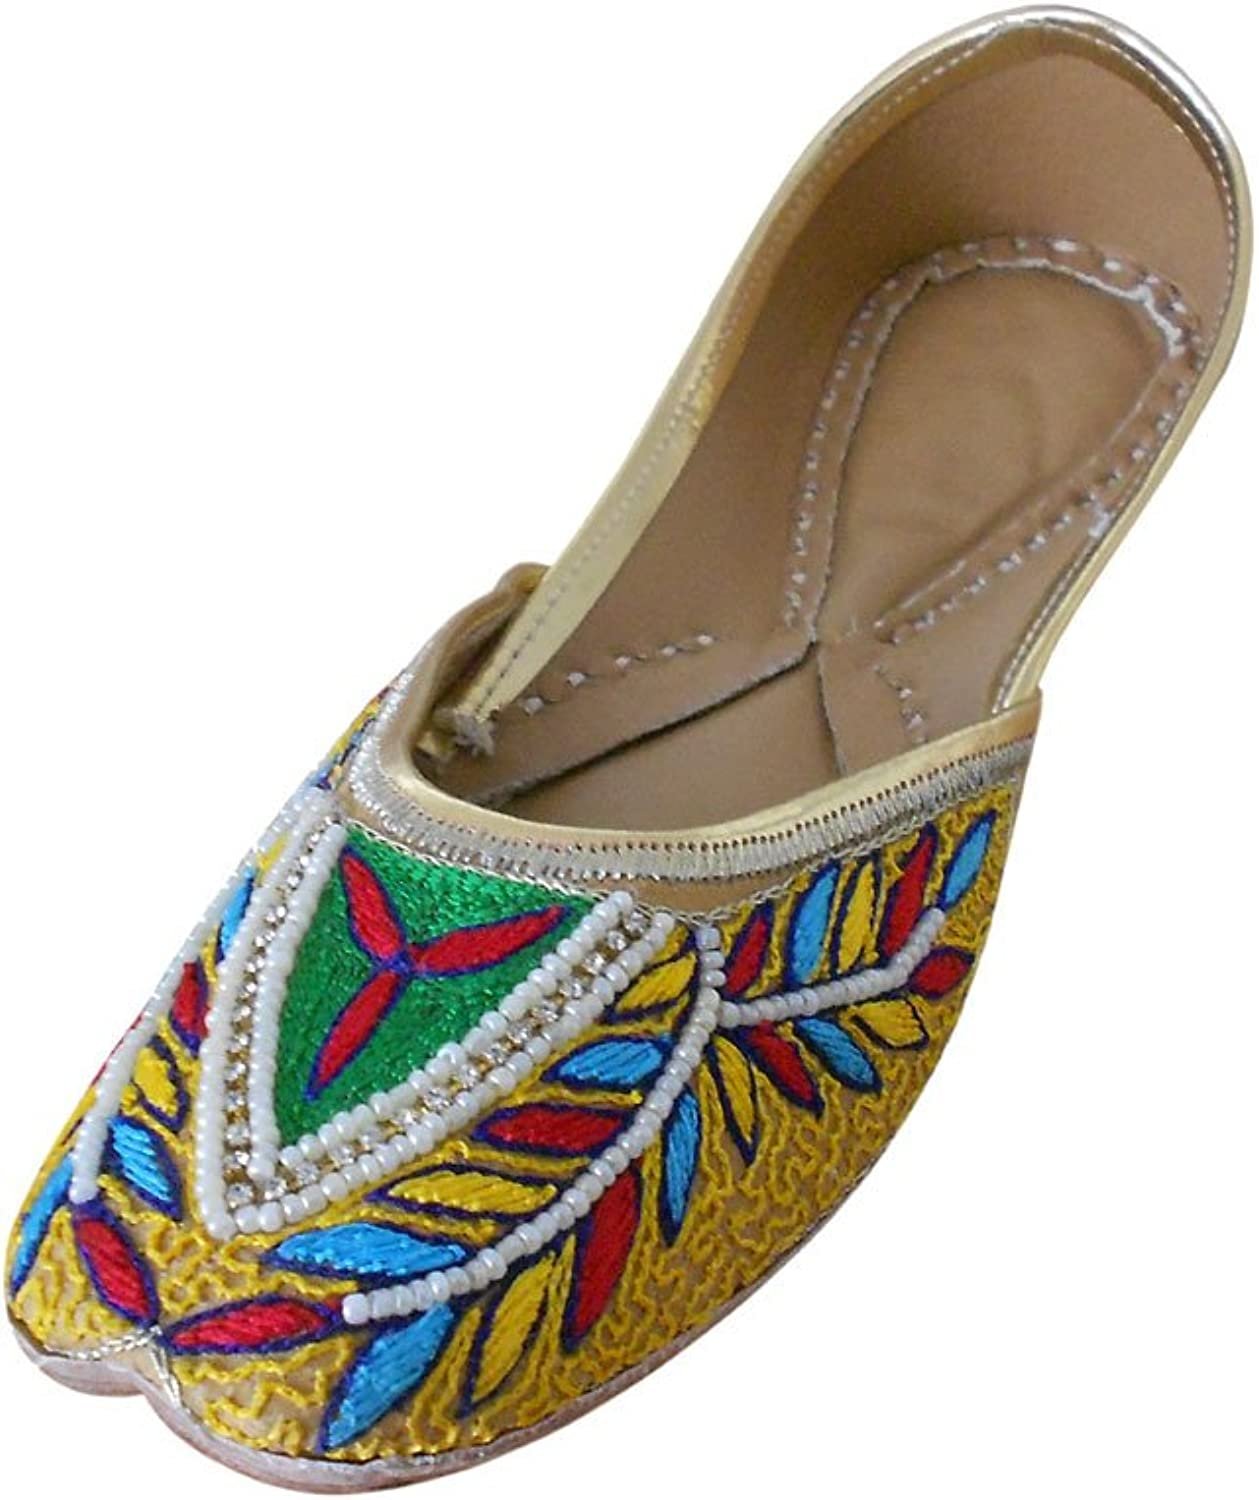 Kalra Creations Jutti Women's Traditional Indian Faux Leather with Embroidery Ethnic shoes